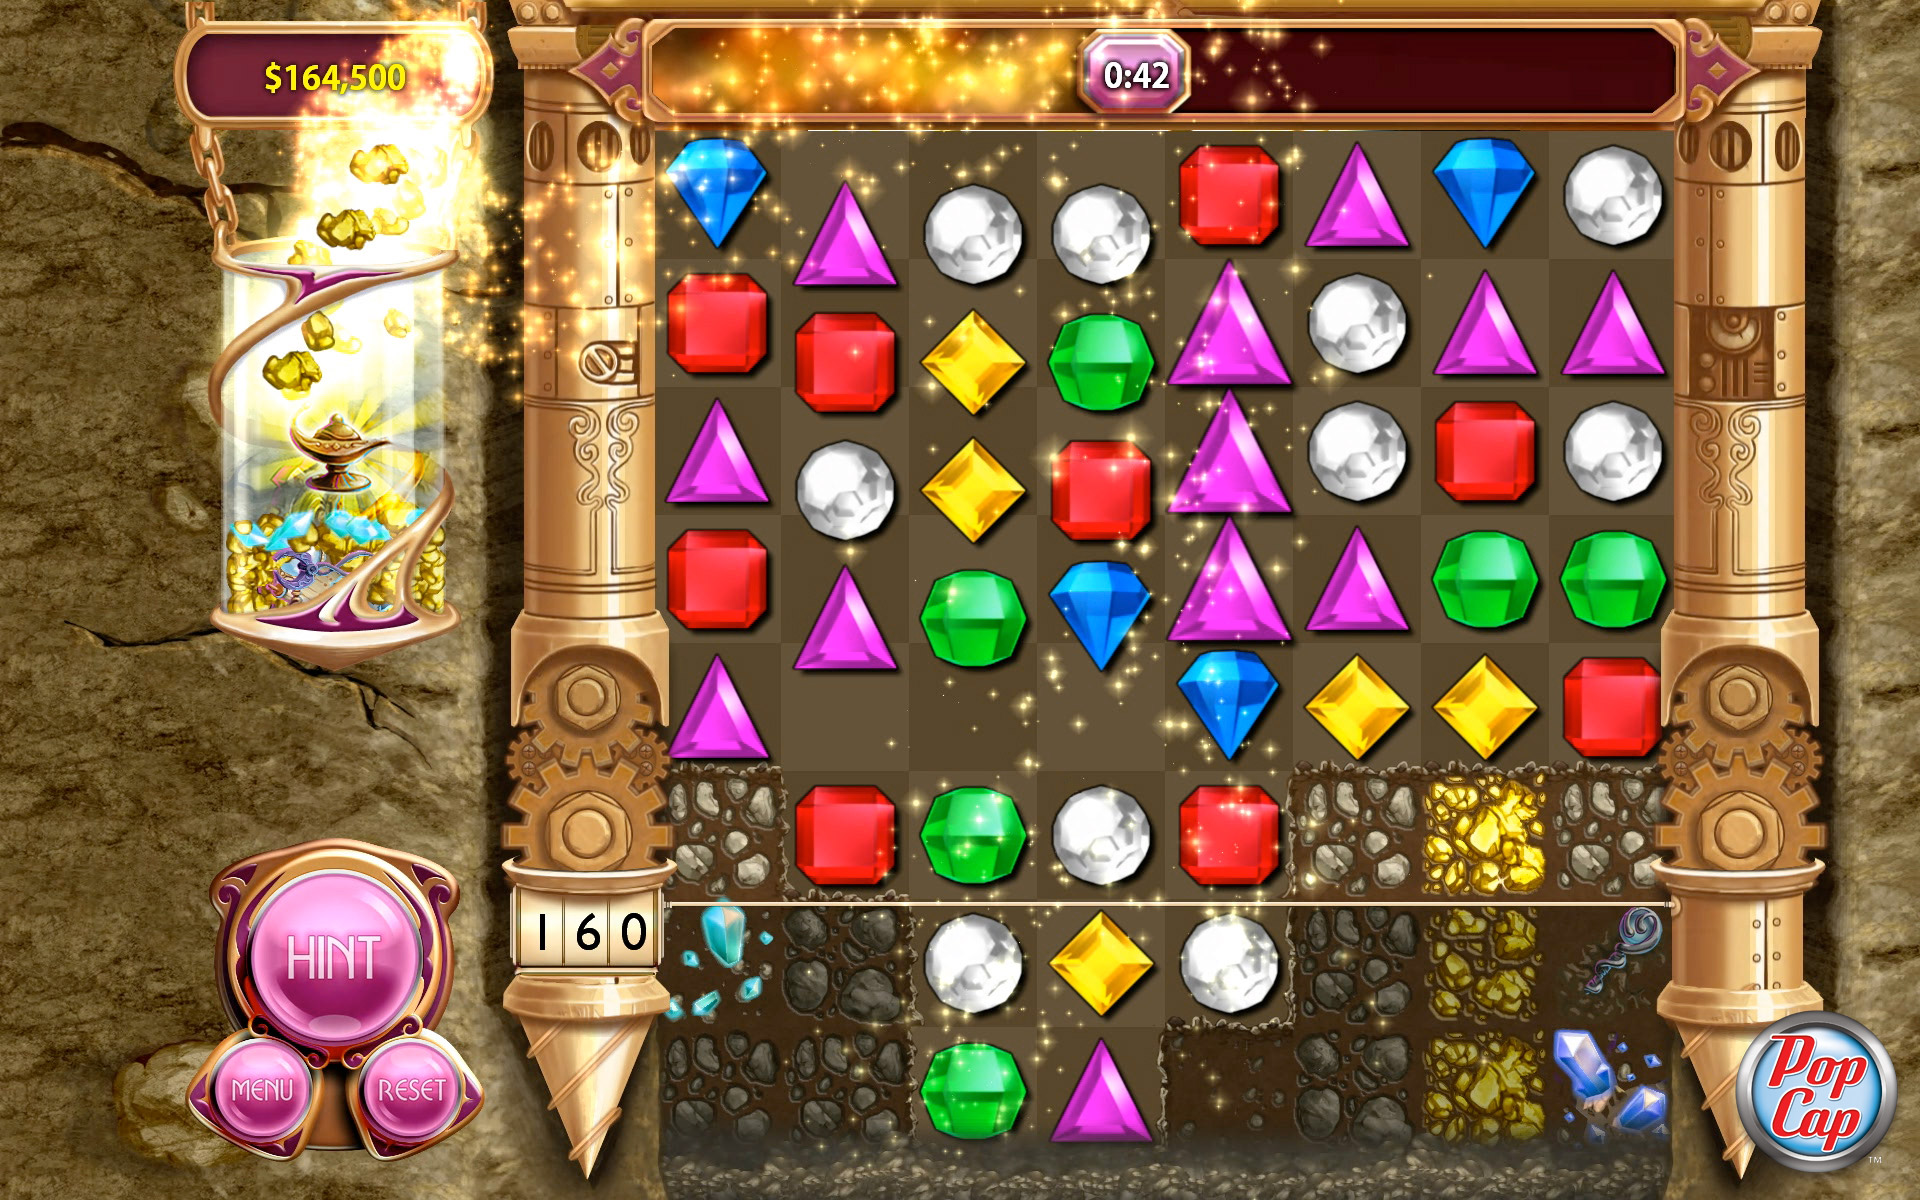 Bejeweled 3 screen shot